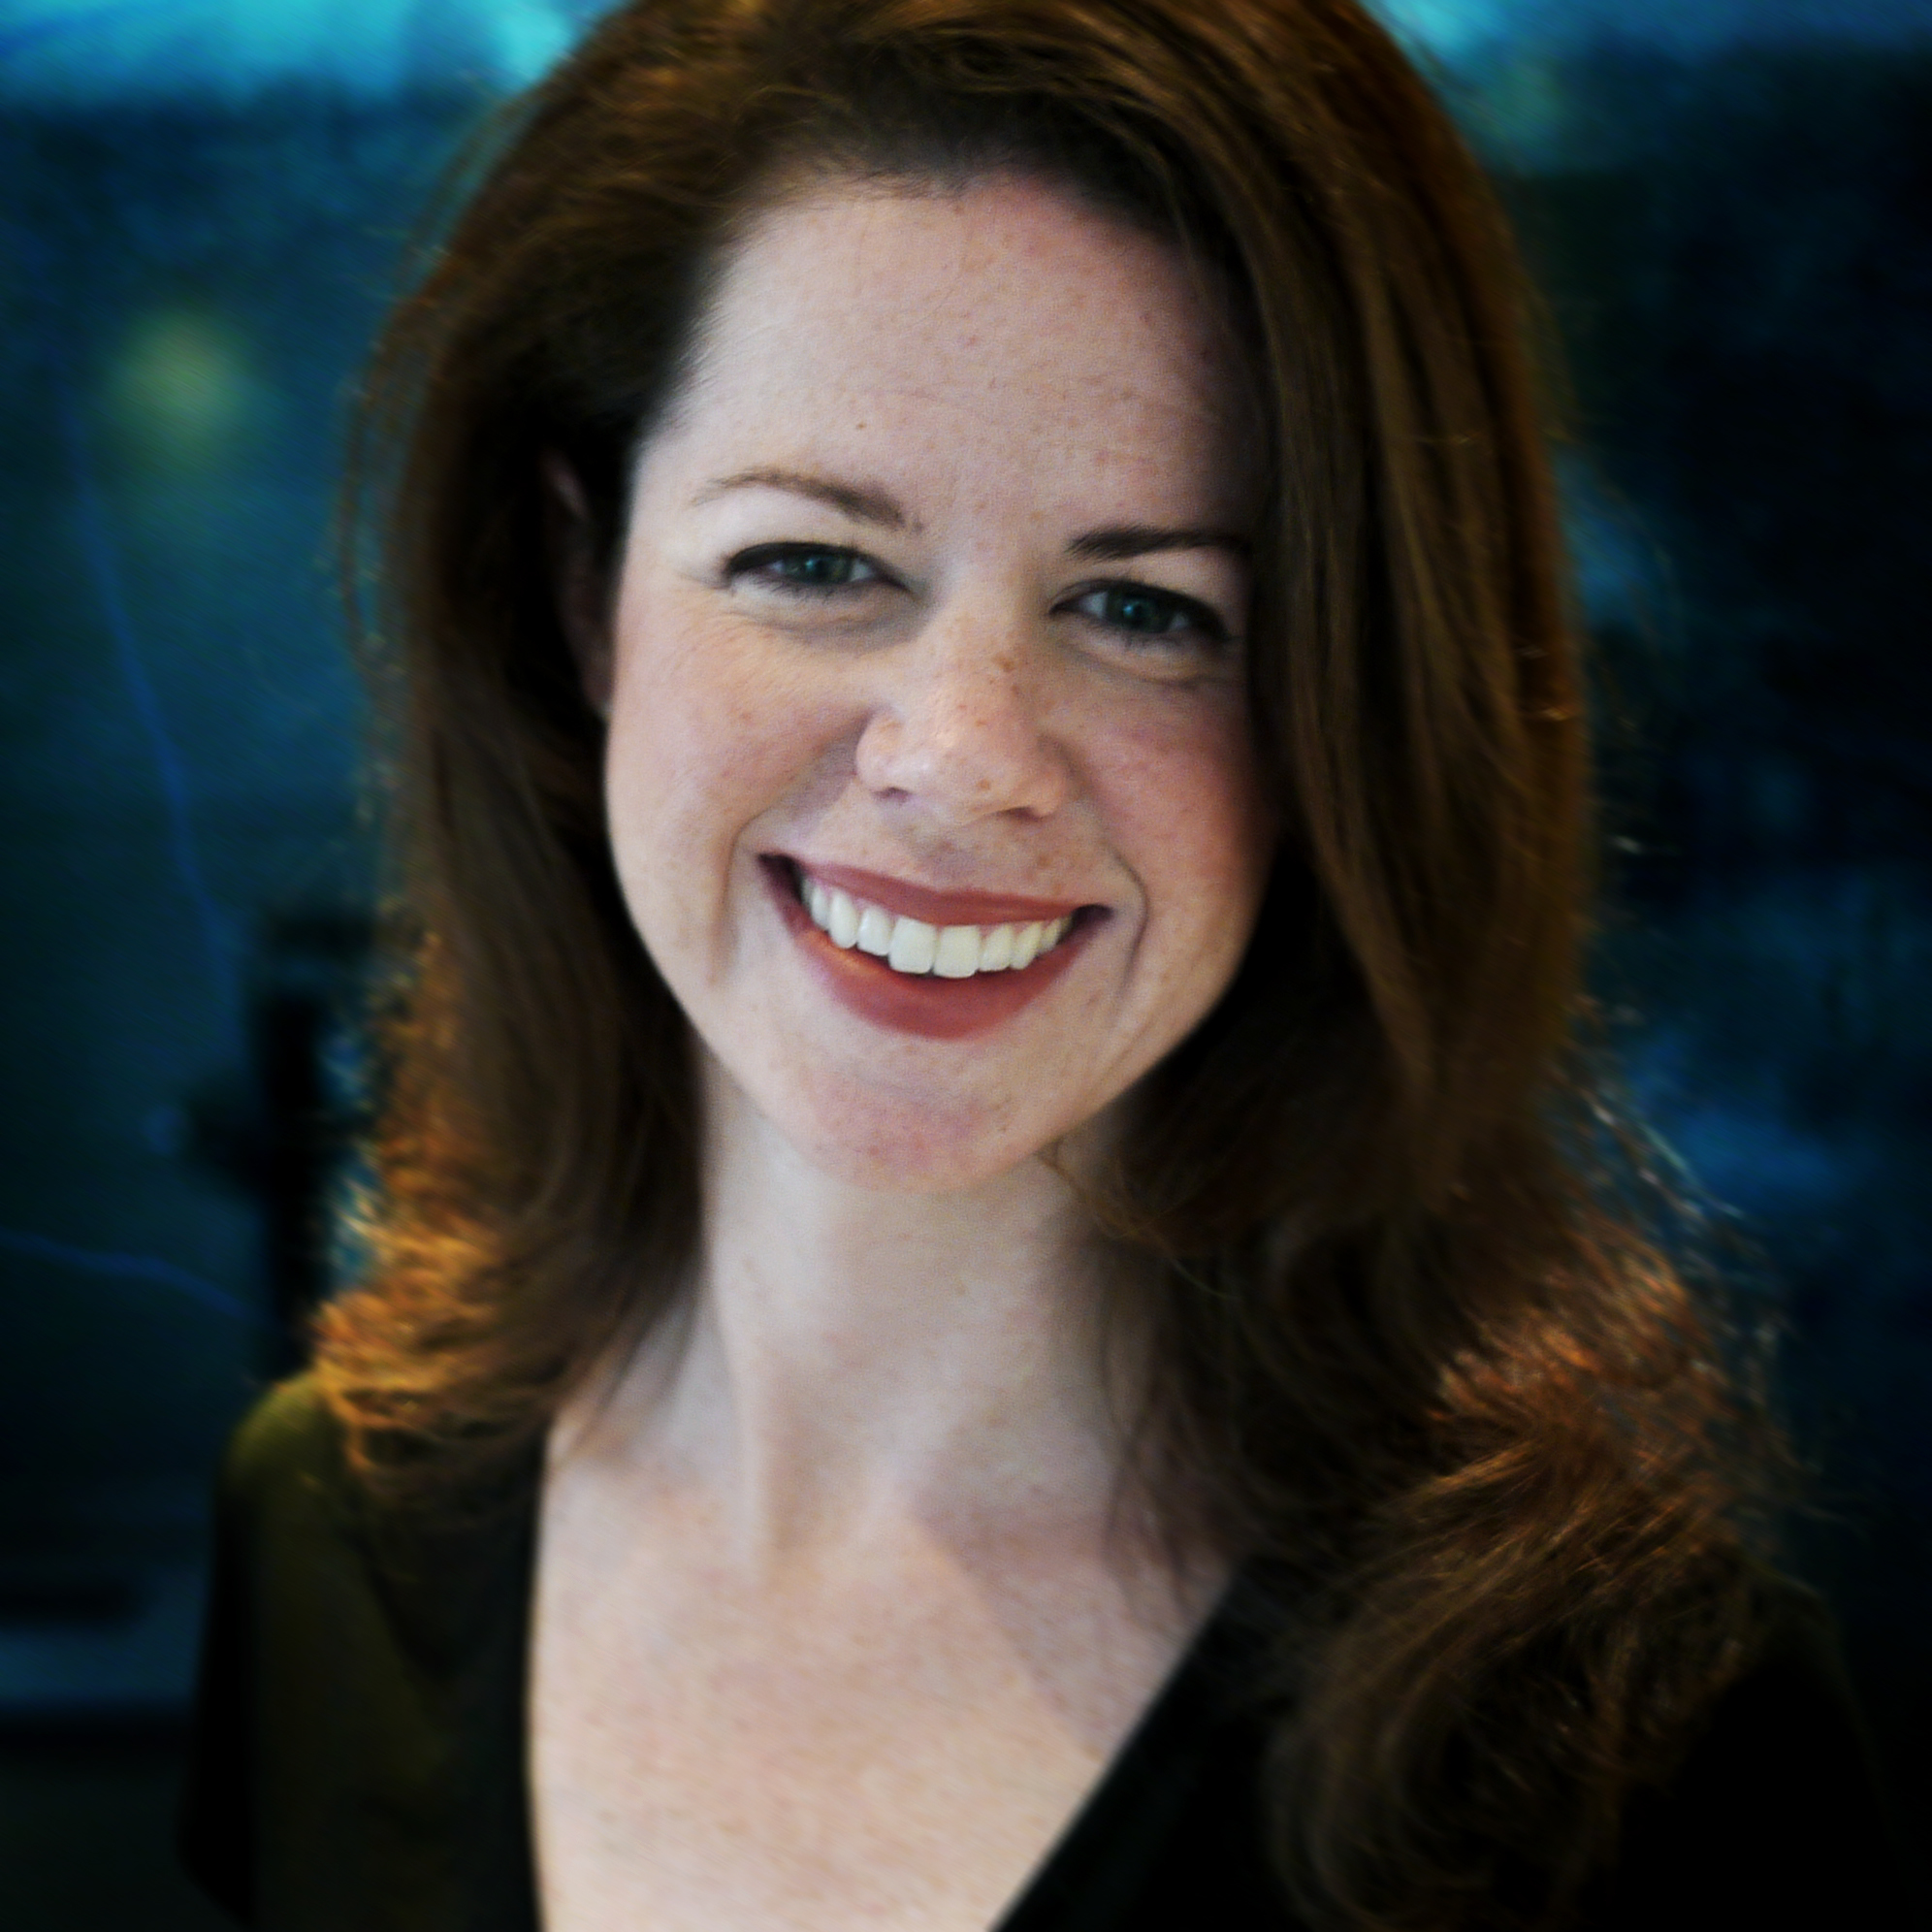 heather-dahl-is-executive-director-and-amp-ceo-of-sovrin-foundation-a-public-service-utility-enabling-self-sovereign-digital-identity-on-the-internet-ep2226_thumbnail.png